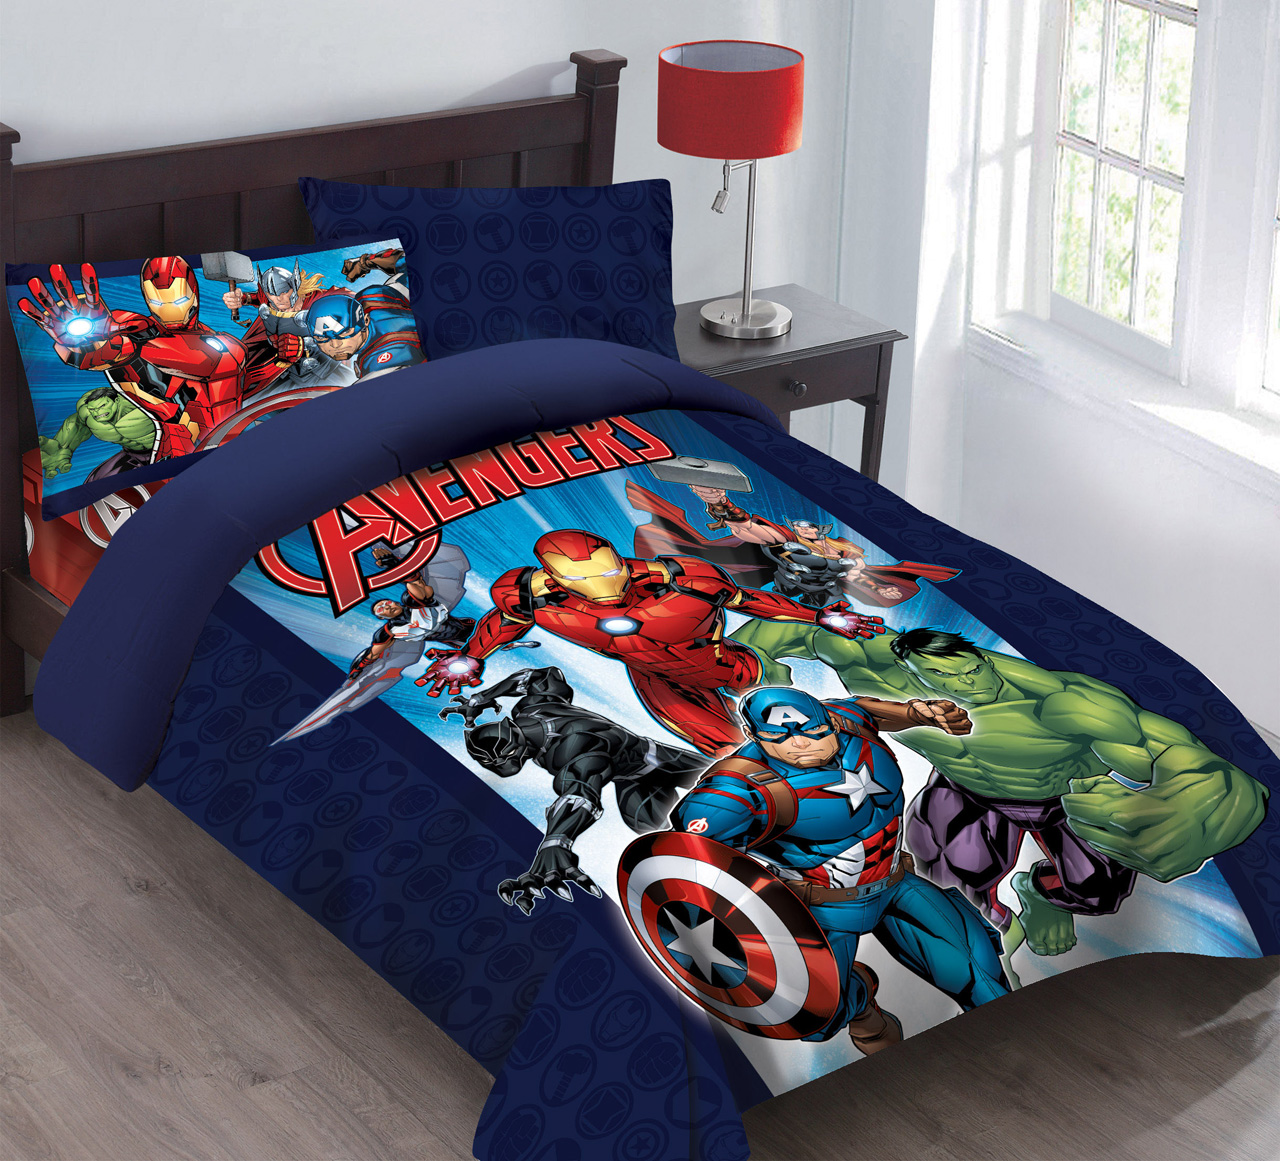 Marvel Avengers Forever Comforter Set with Fitted Sheet